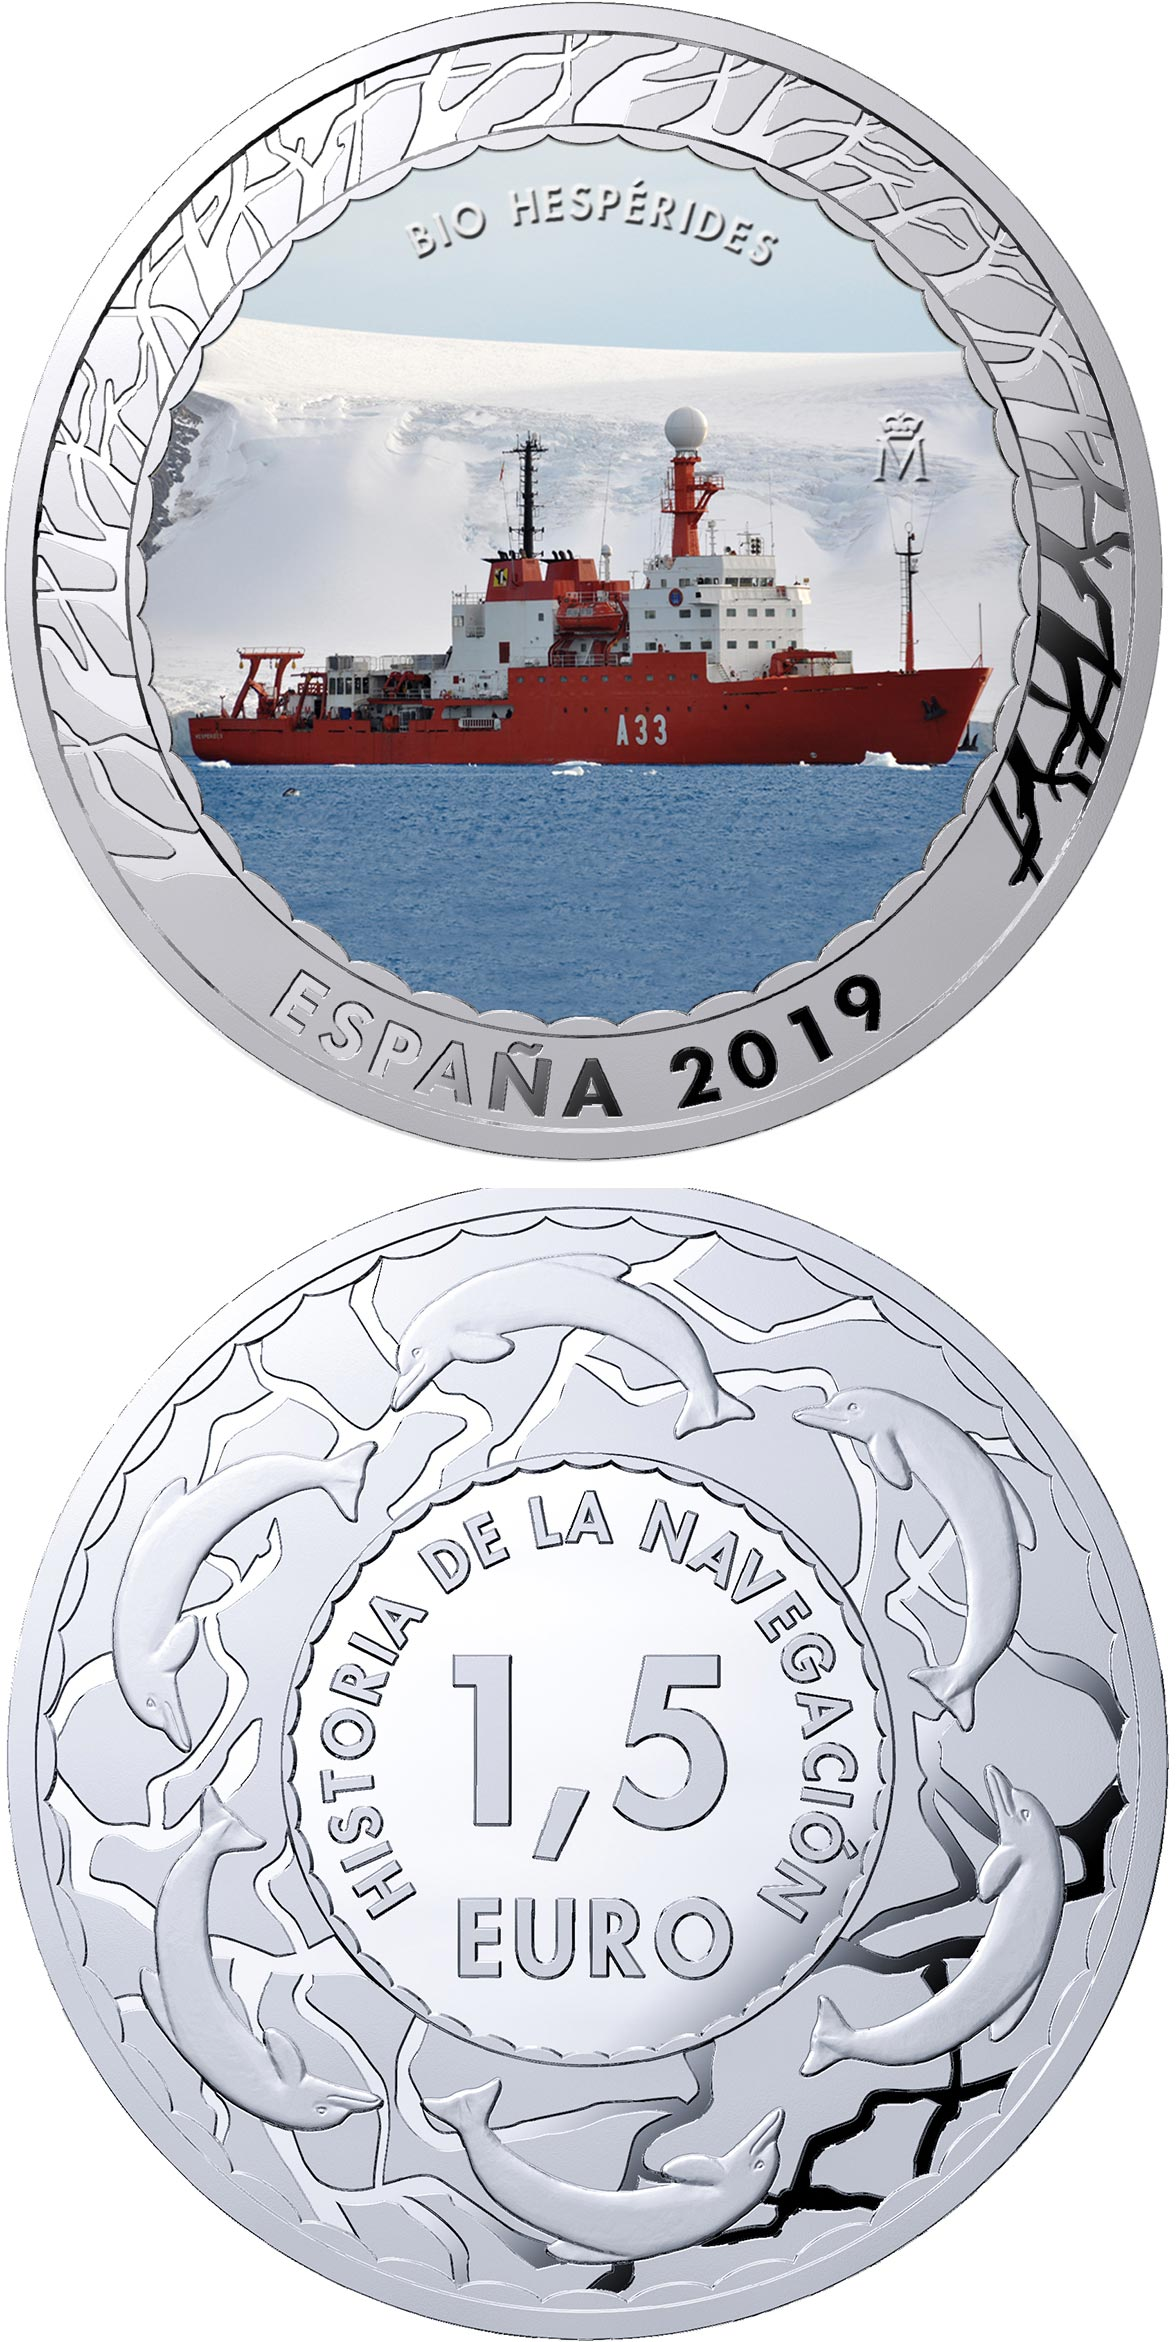 Image of 1.5 euro coin - Bio Hespérides | Spain 2019.  The Copper–Nickel (CuNi) coin is of BU quality.